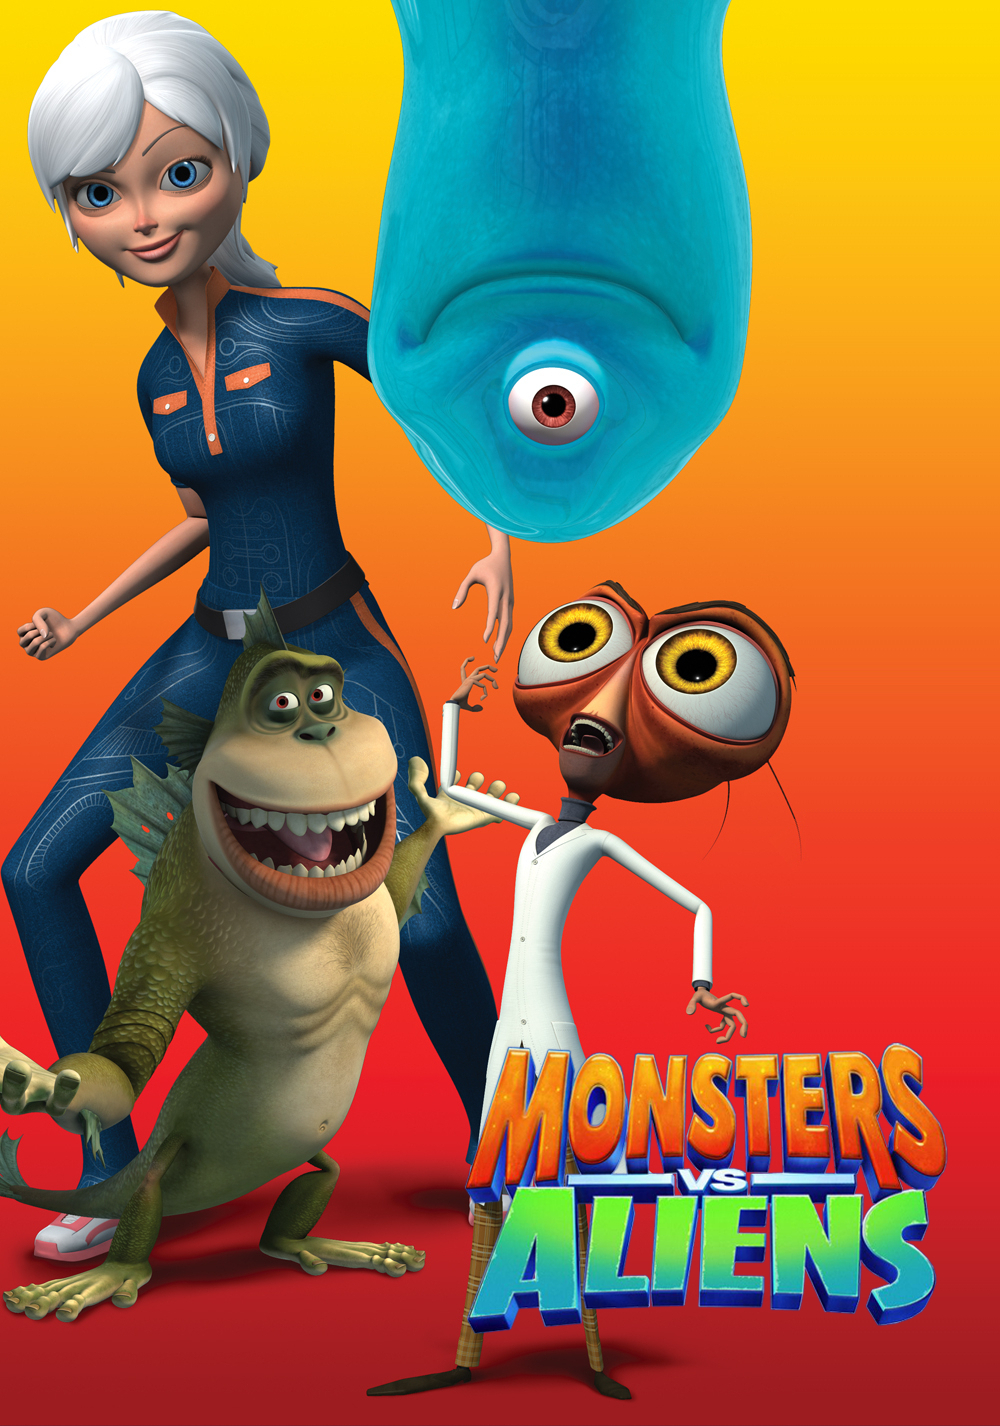 For that Monsters vs aliens accept. interesting